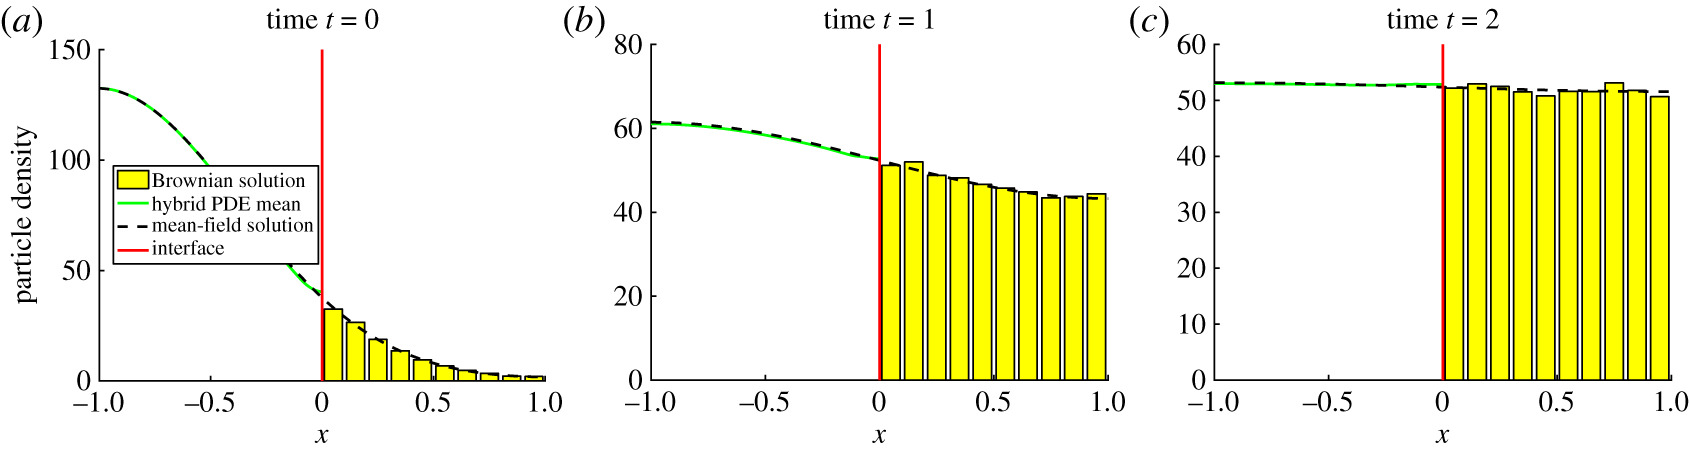 The auxiliary region method: a hybrid method for coupling PDE- and